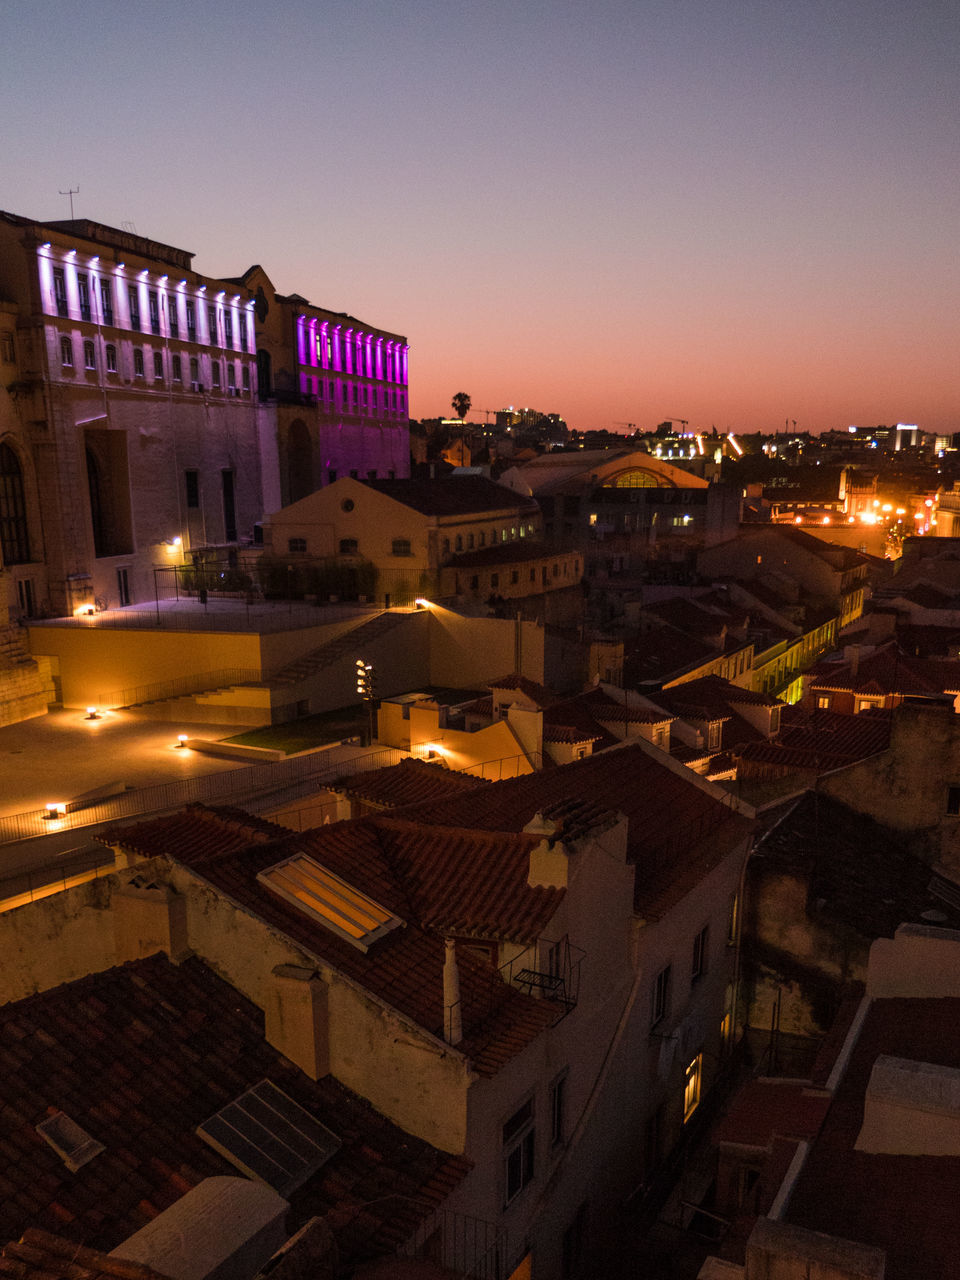 architecture, building exterior, built structure, no people, illuminated, city, night, outdoors, cityscape, sunset, sky